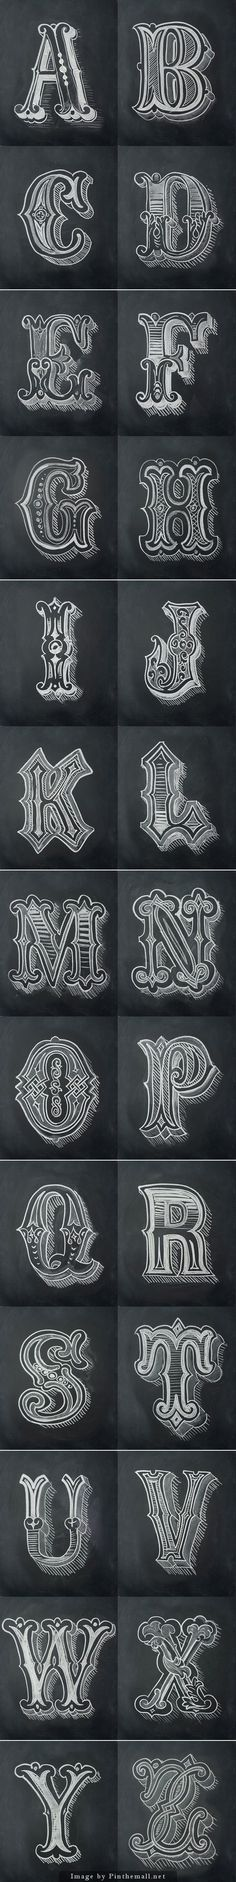 Chalk Alphabet by Antonio Rodrigues Jr. - a grouped images picture - Pin Them. - # Chalk Alphabet by Antonio Rodrigues Jr. - a grouped images picture - Pin Them. Calligraphy Letters, Typography Letters, Typography Design, Typography Poster, Learn Calligraphy, Chalkboard Lettering Alphabet, Typography Alphabet, Inspiration Typographie, Typography Served